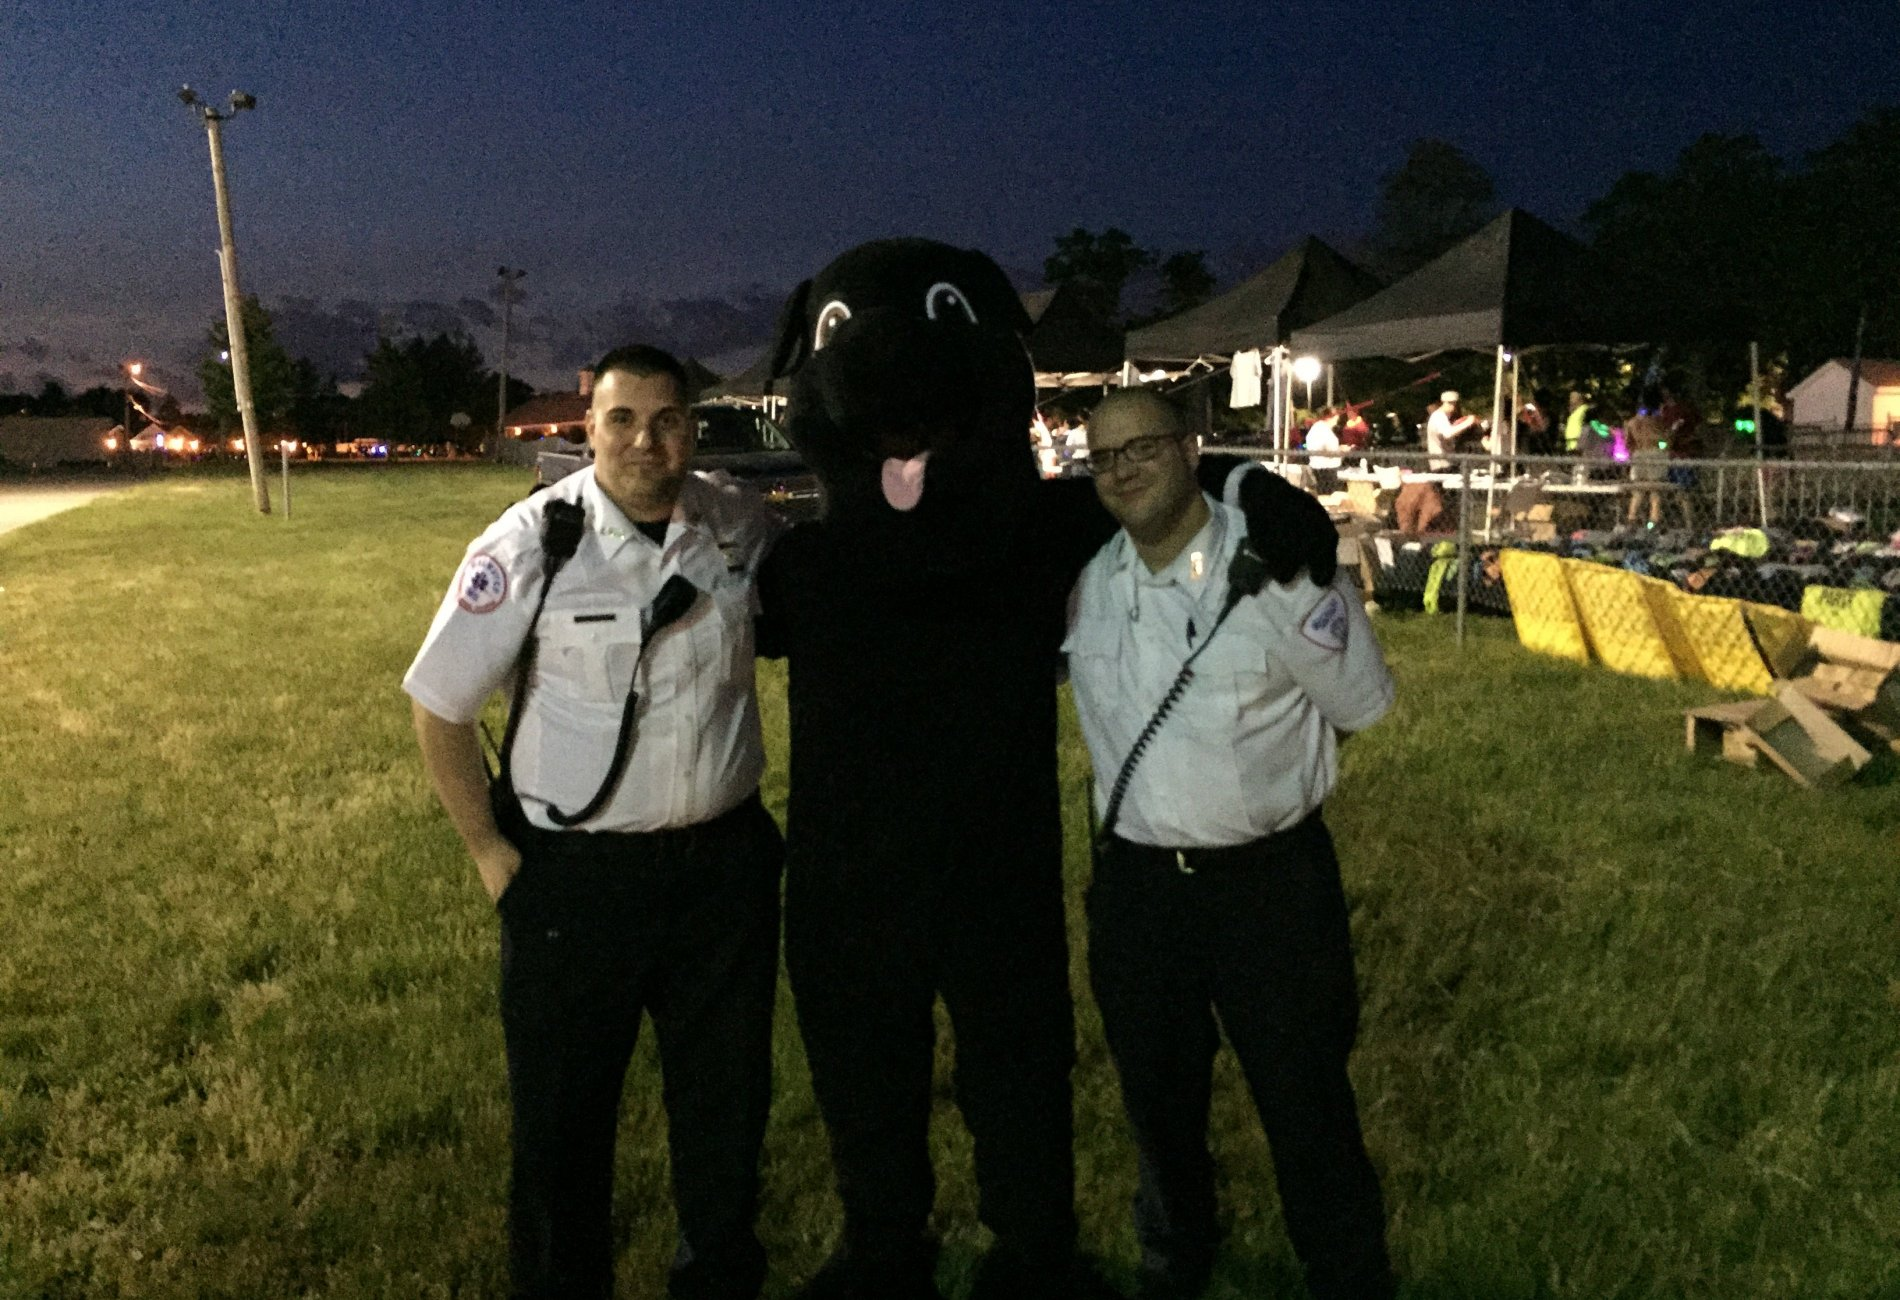 Blackie the Dog from Casey Movers with some EMTs at Boston Night Run 2015